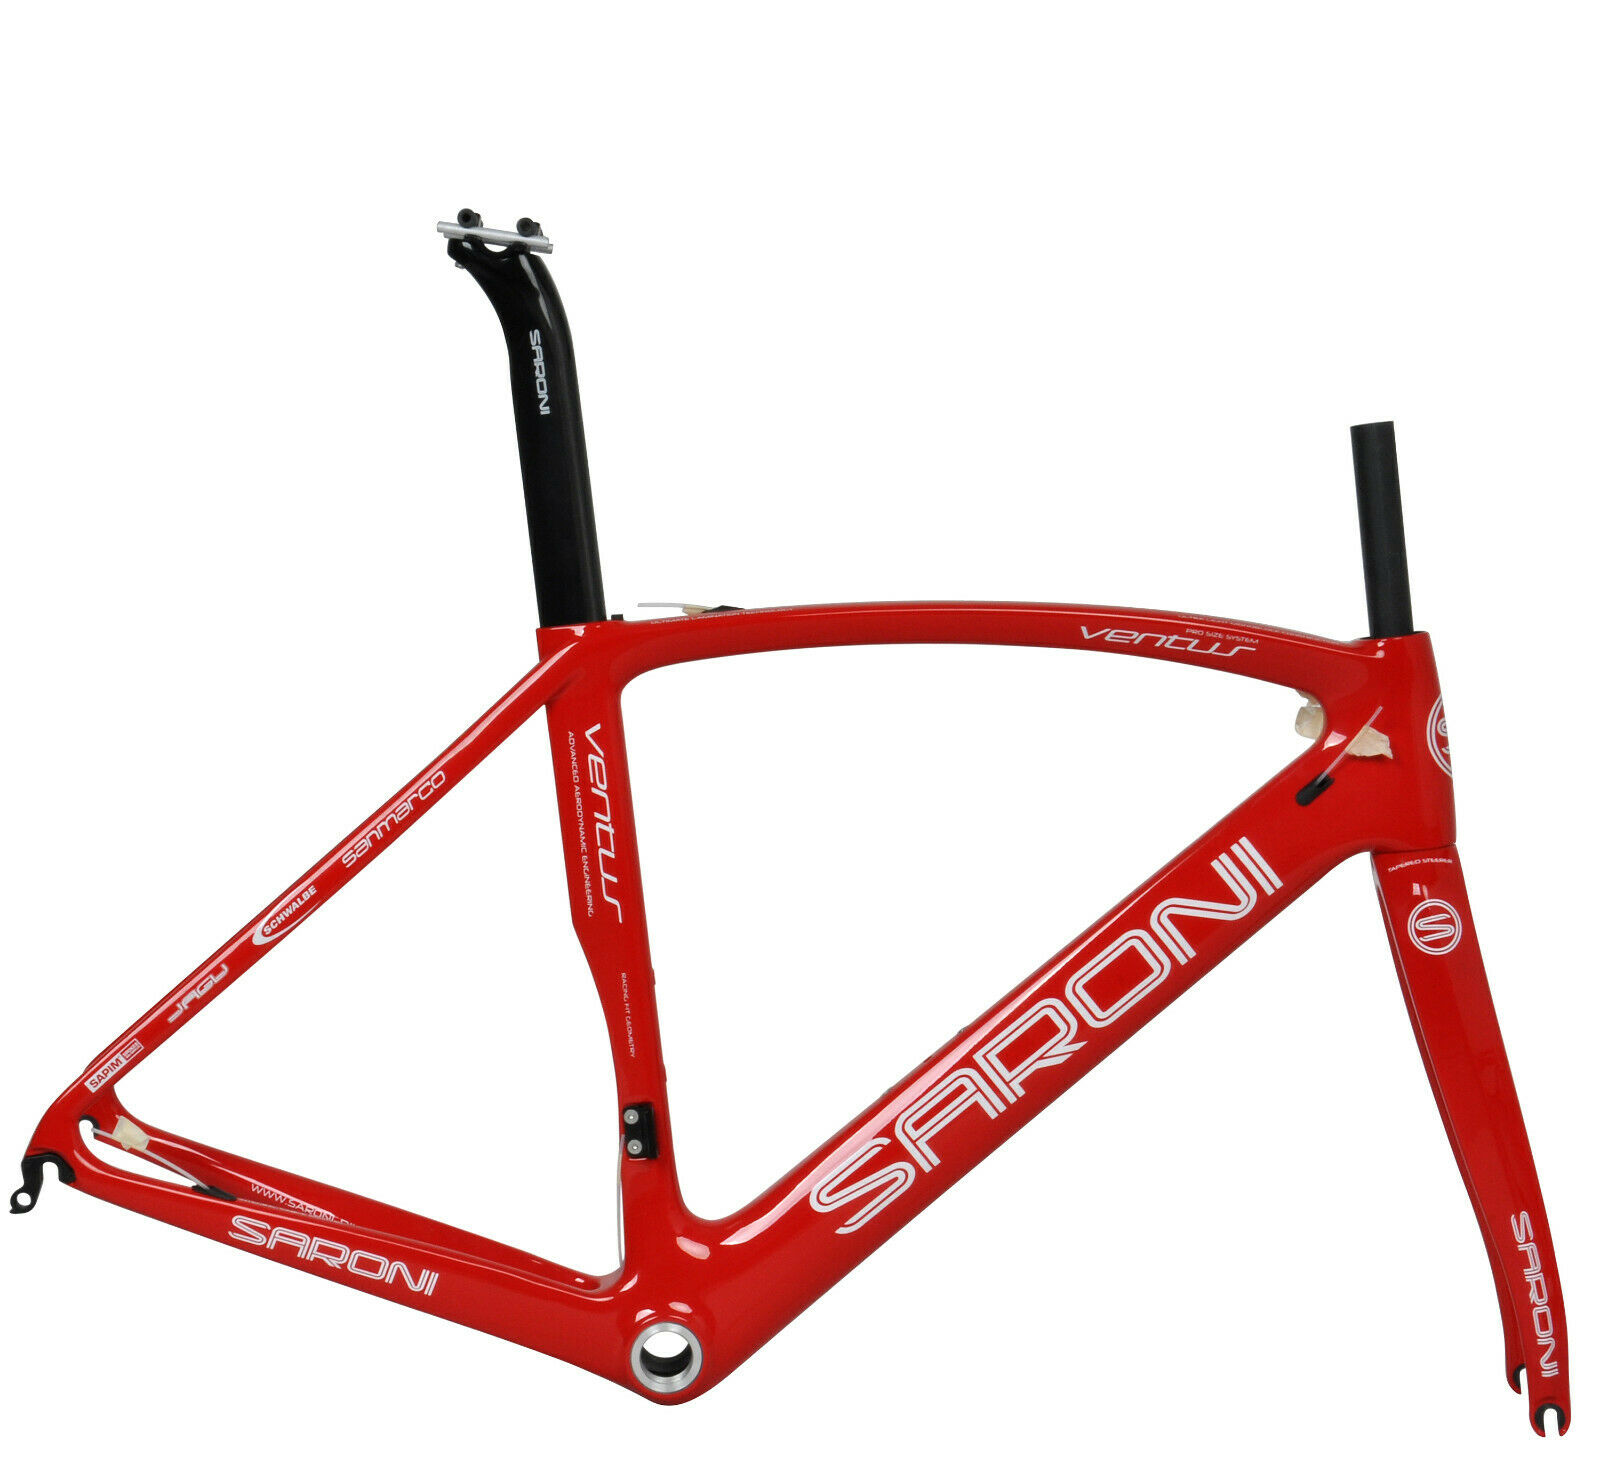 49cm AERO Full Carbon Frame Fork Road Bike Frameset 700C Di2 Race Cycle rouge